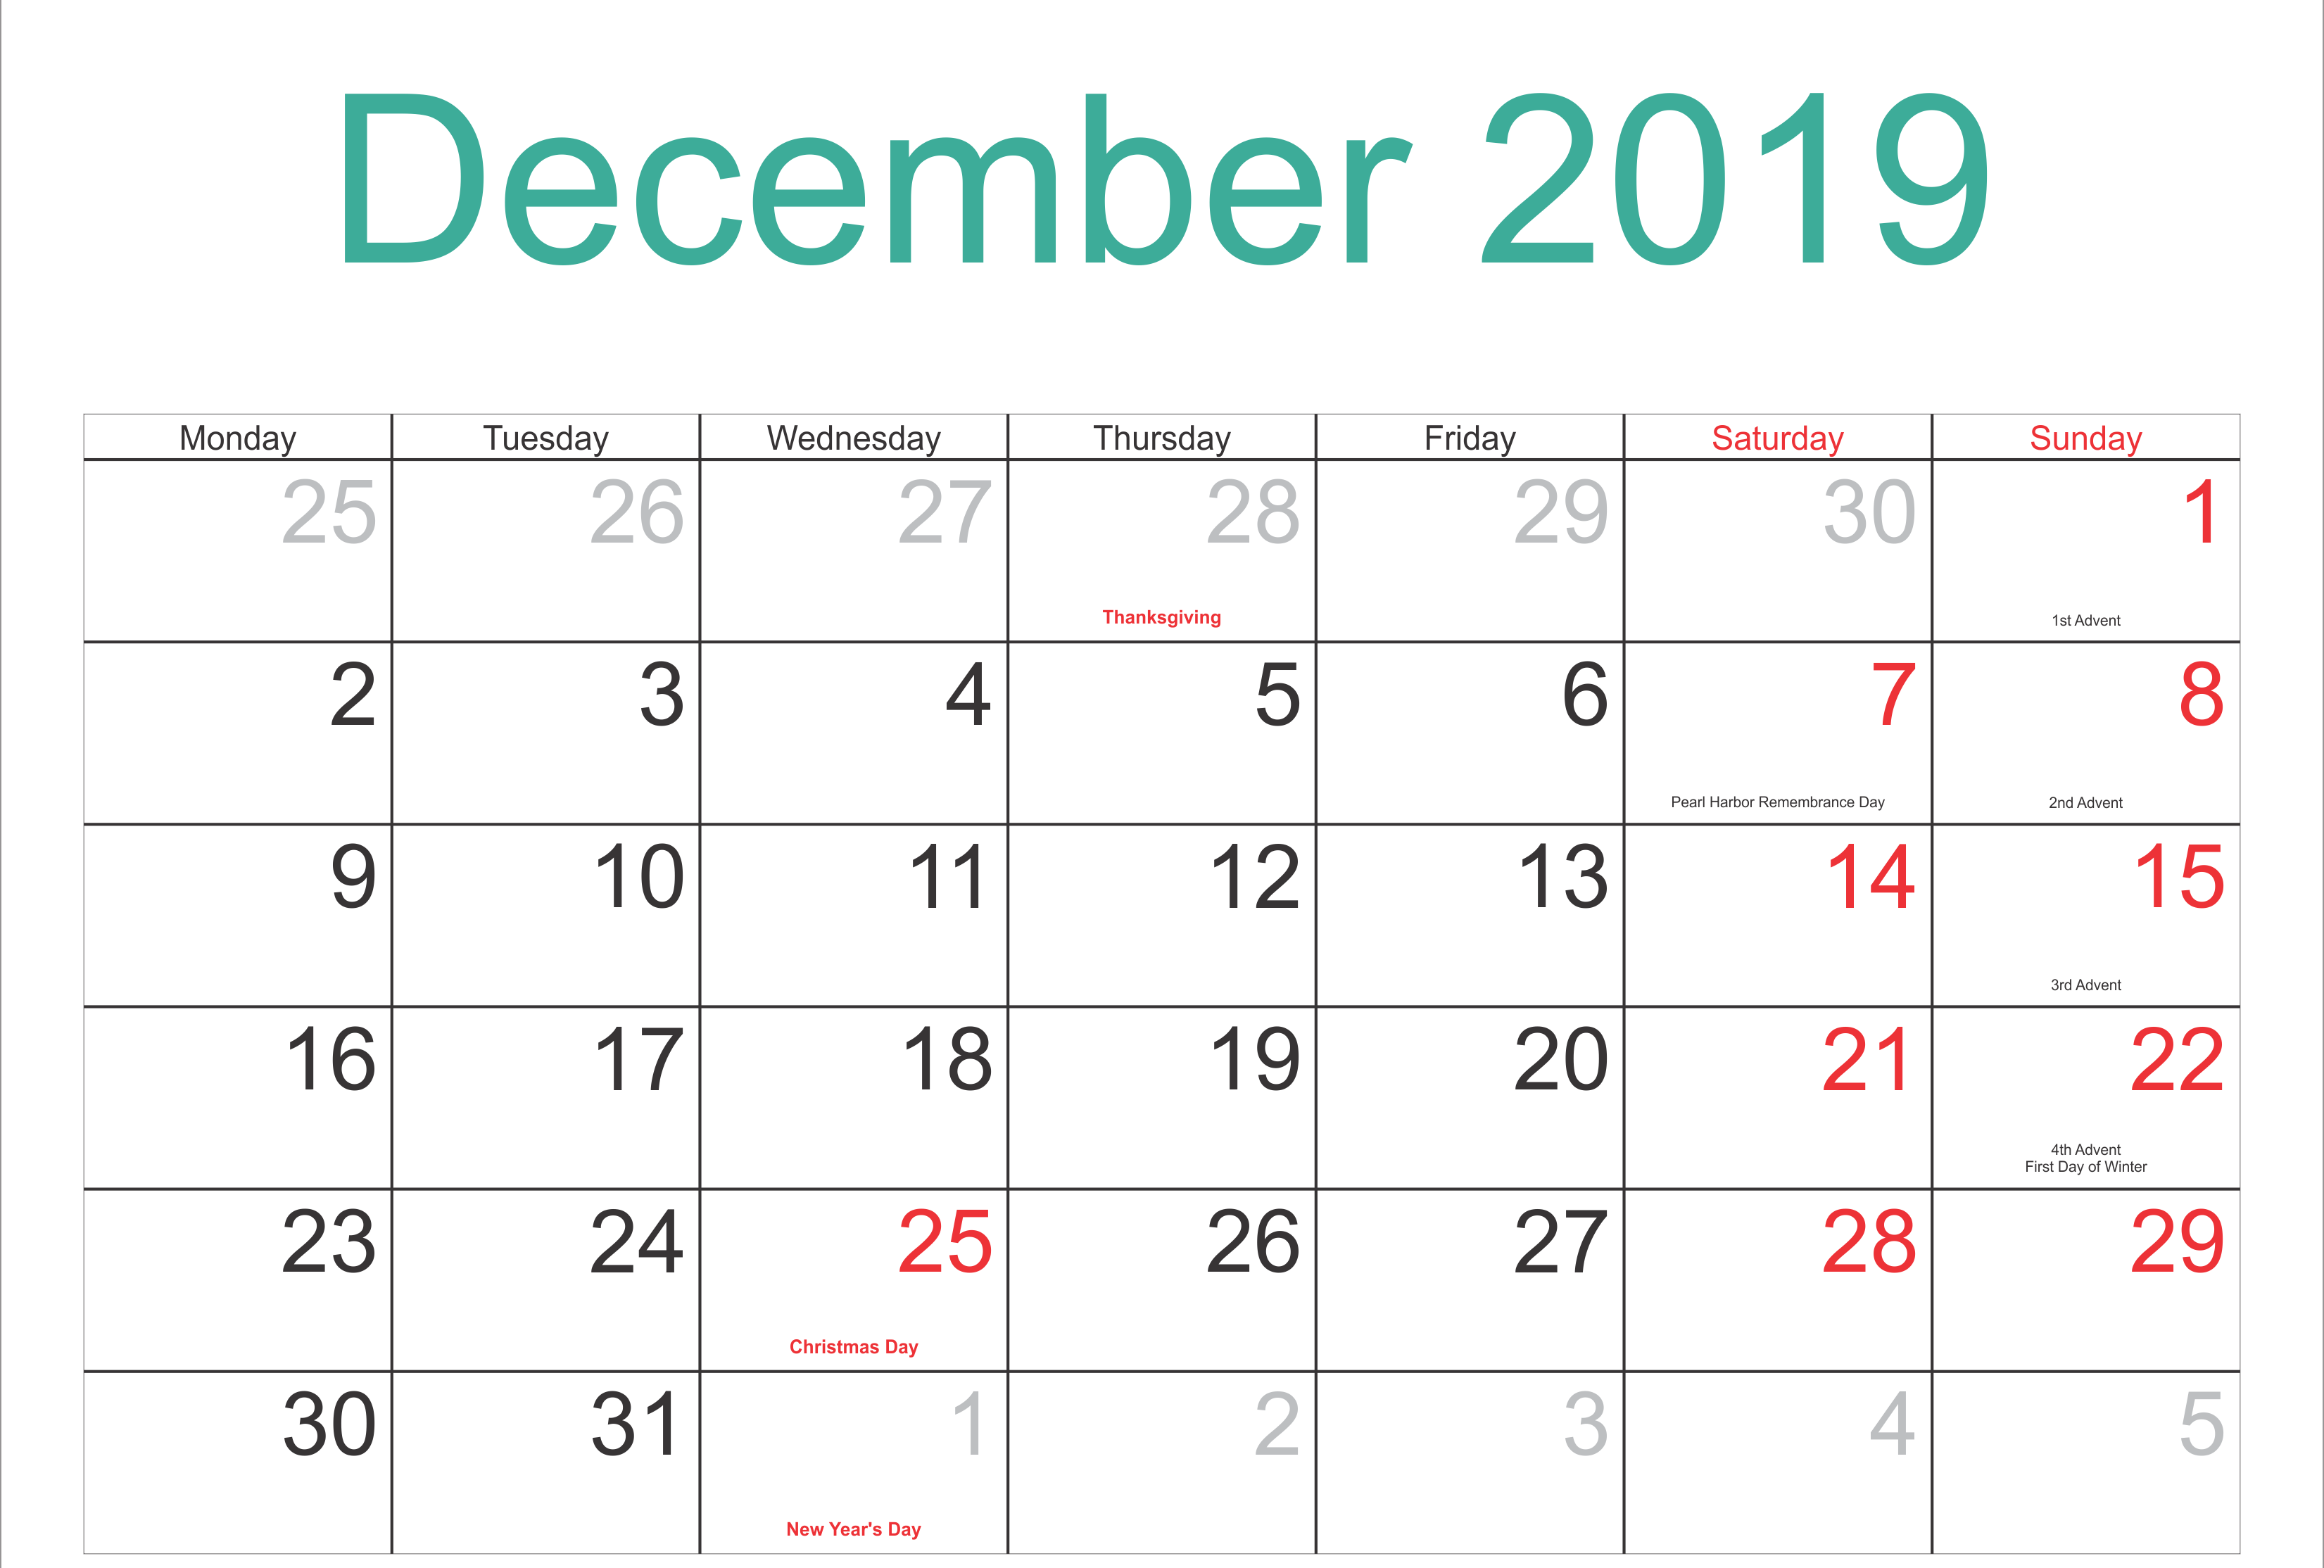 December 2019 Holidays Calendar Template